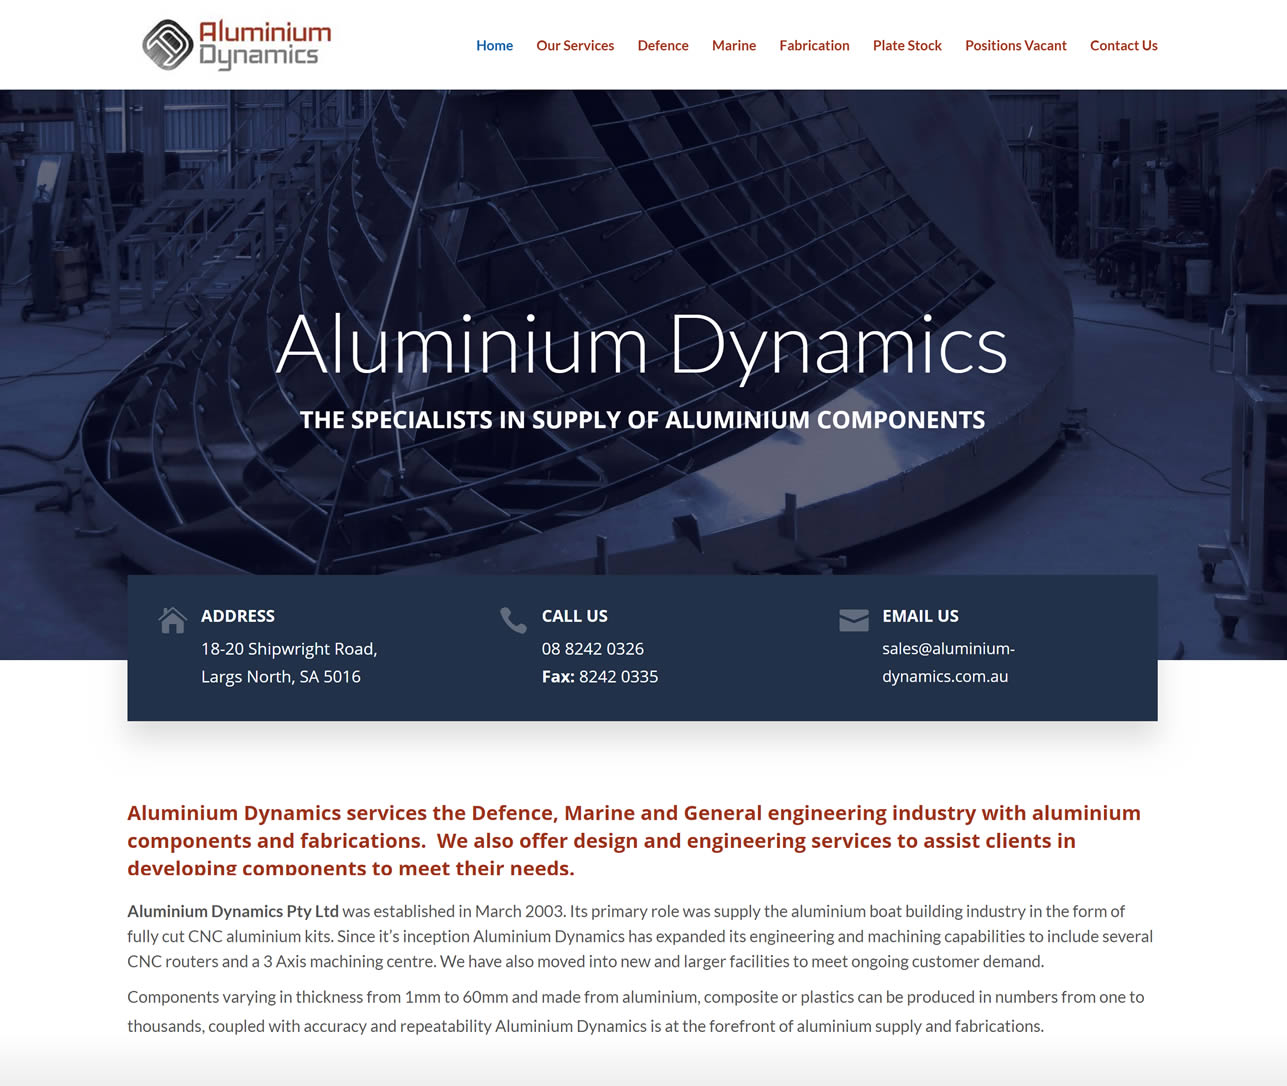 Aluminium Dynamics Website